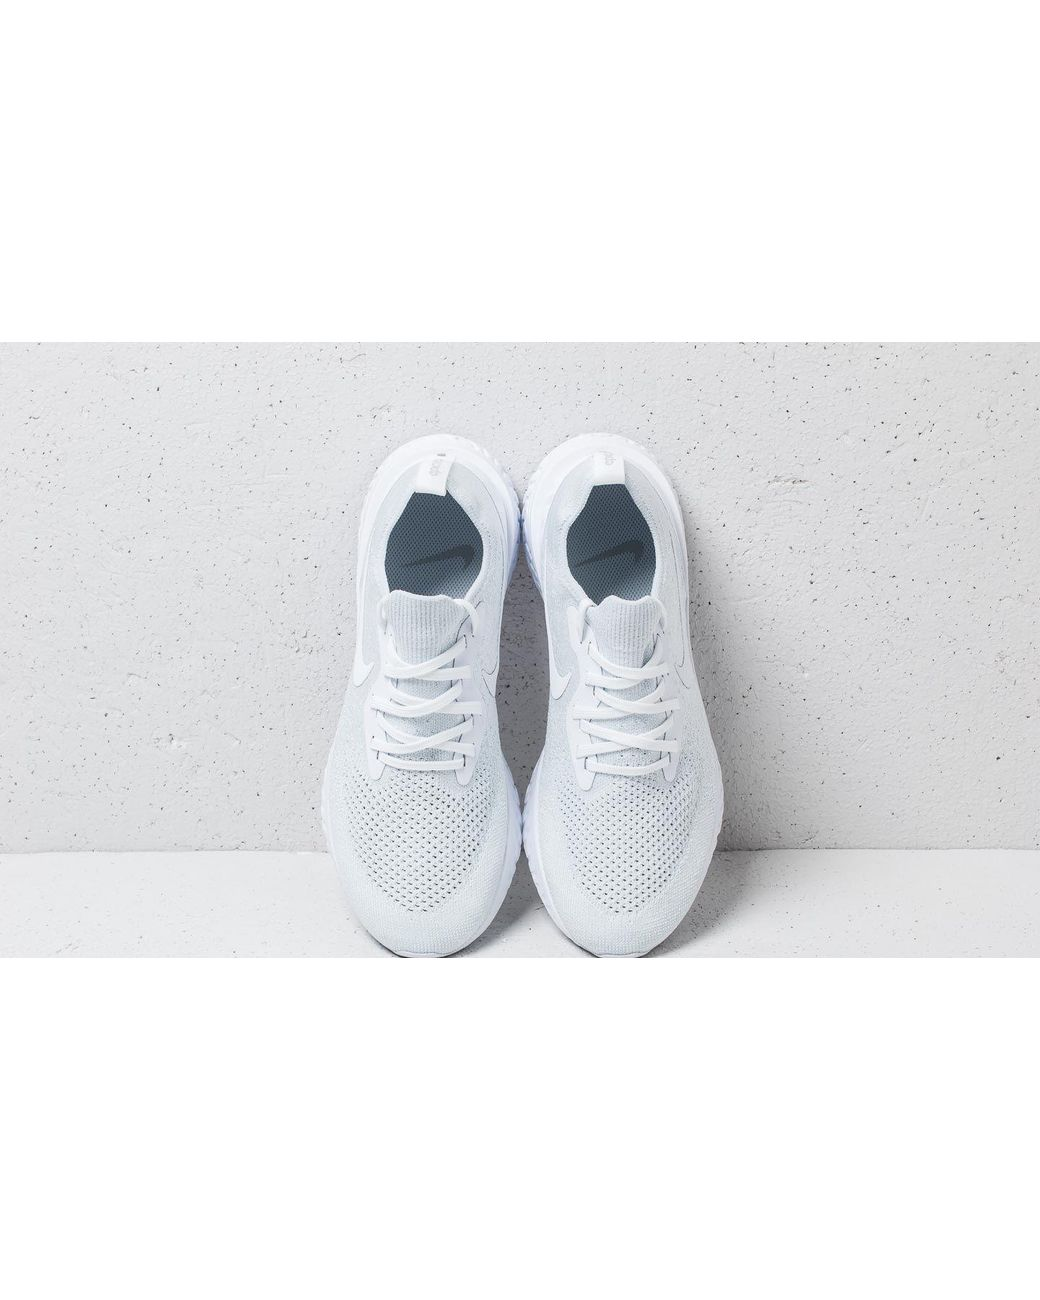 aecf1714ae1 Lyst - Nike Epic React Flyknit True White  White-pure Platinum in White for  Men